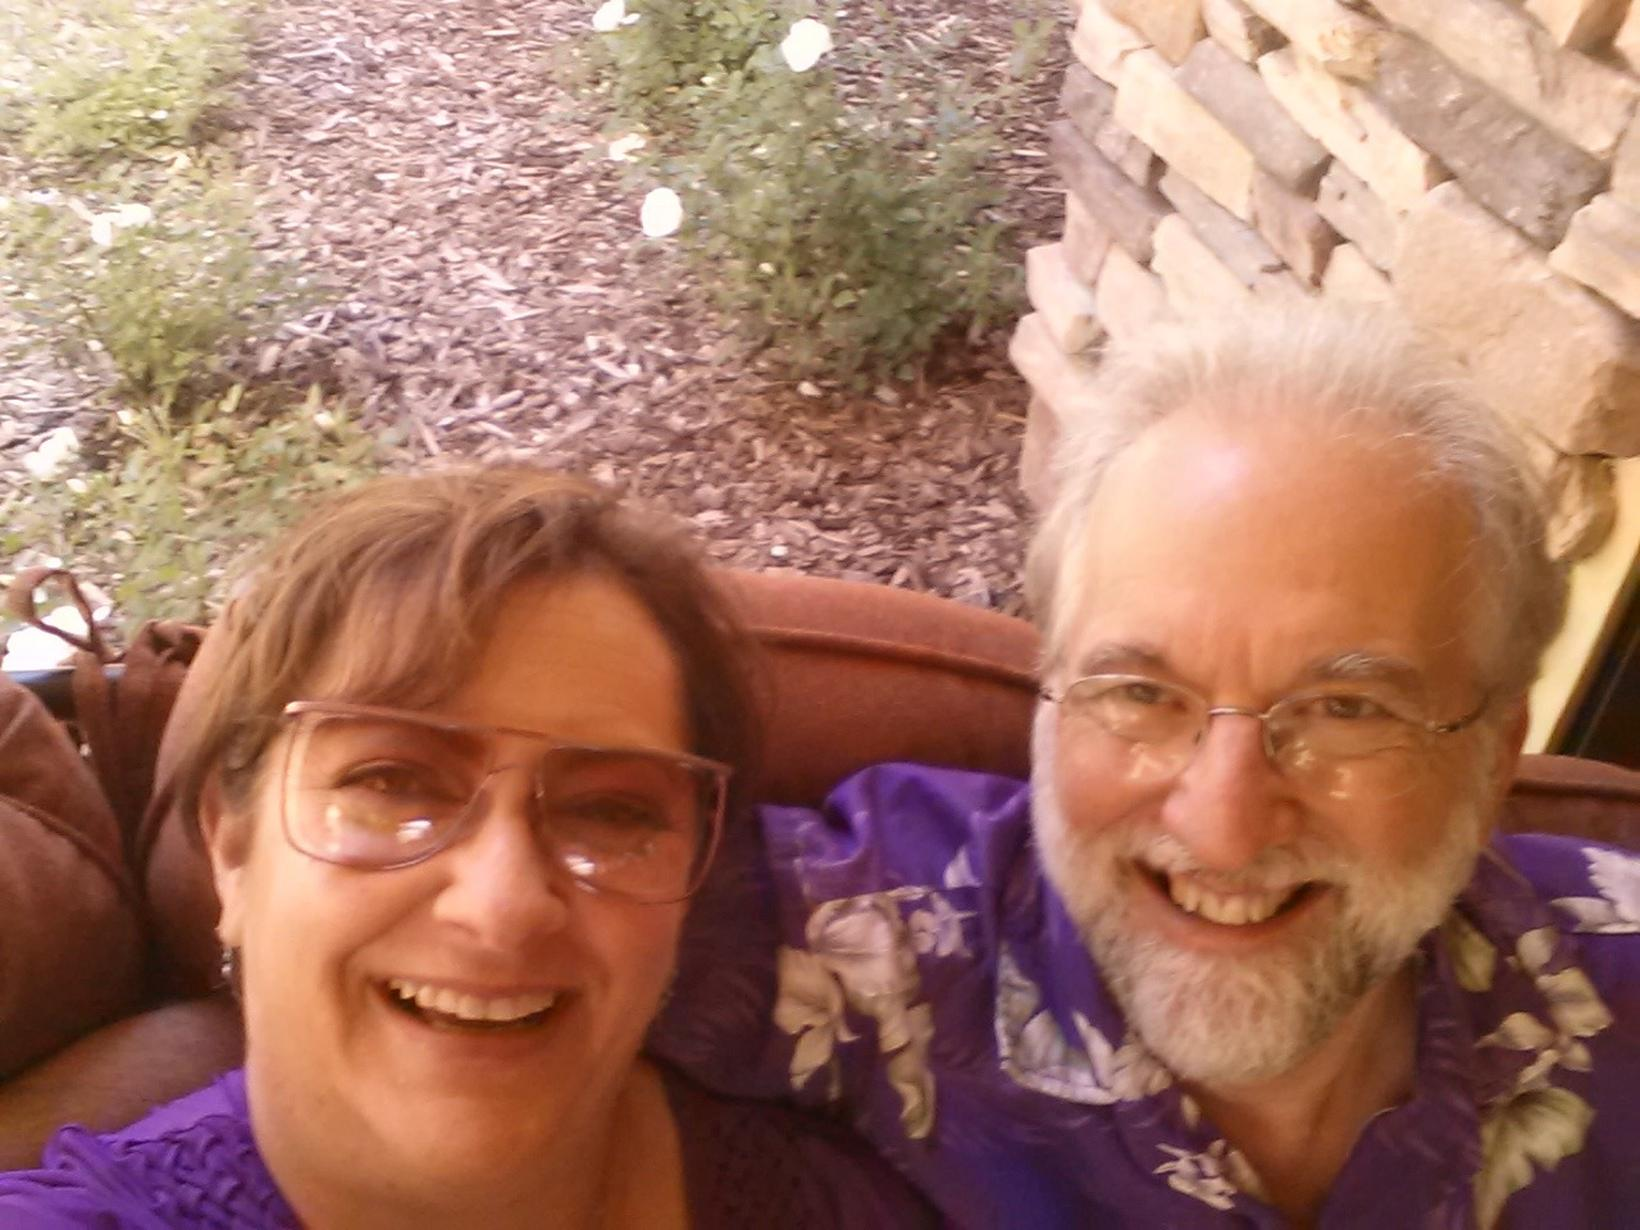 Judith & Roger from Las Vegas DownTown, Nevada, United States